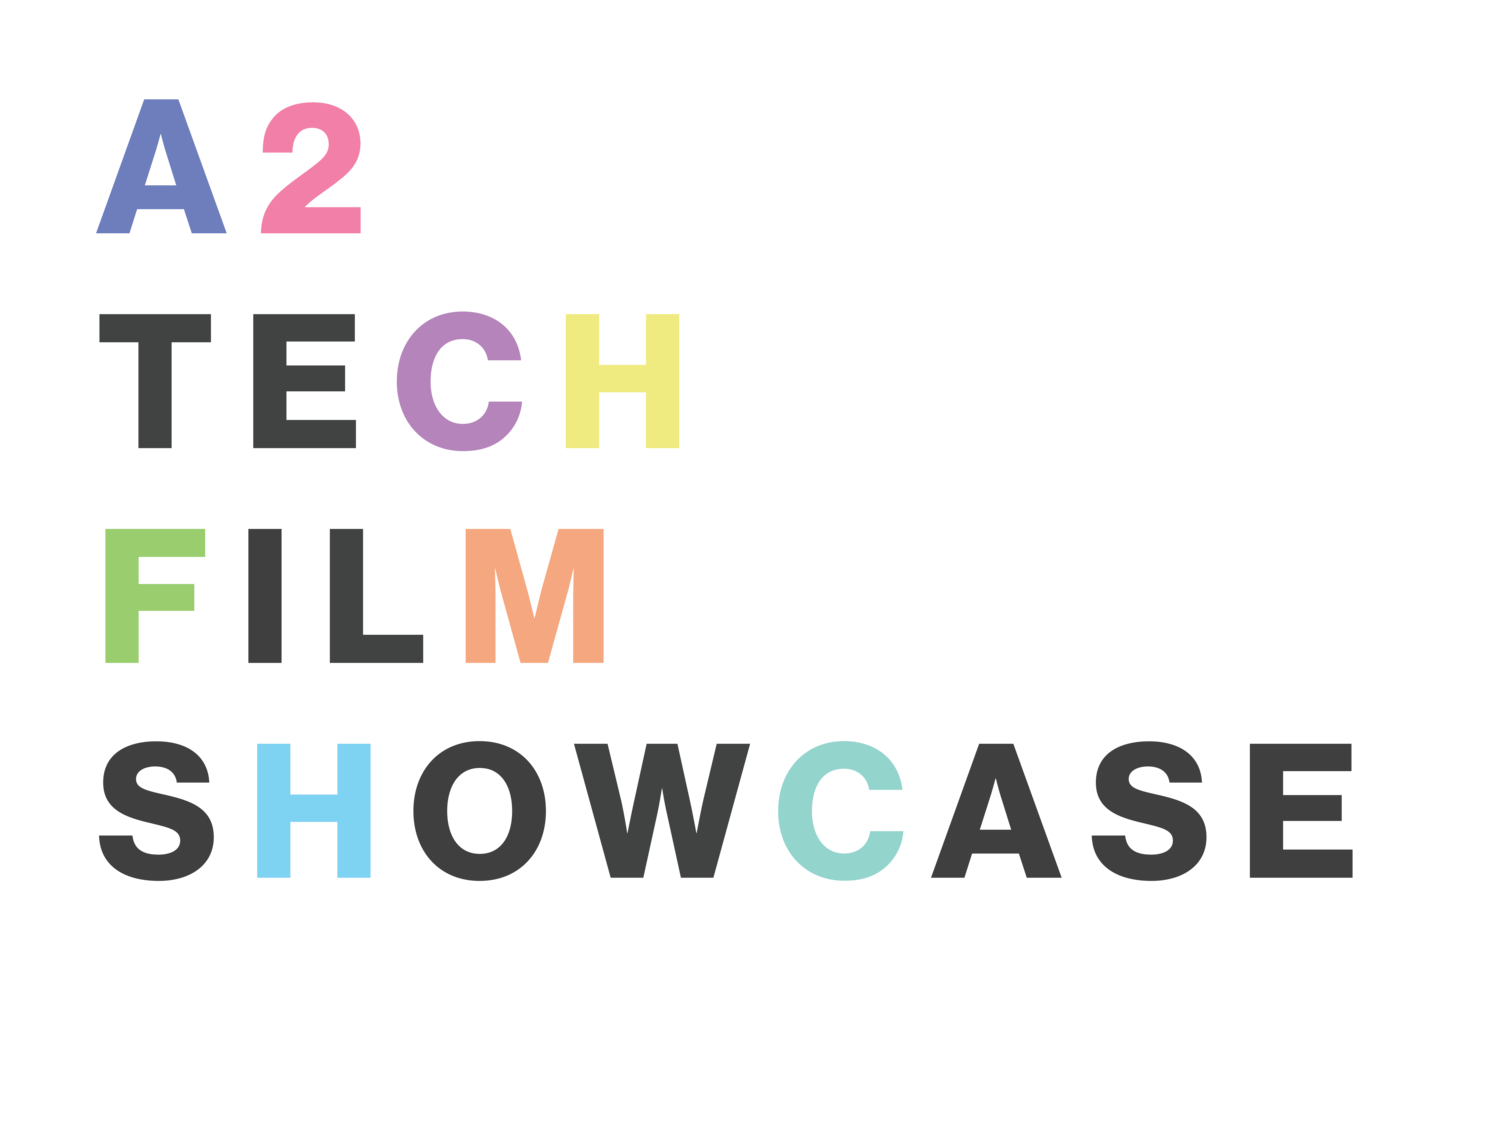 A2 Tech Film Showcase